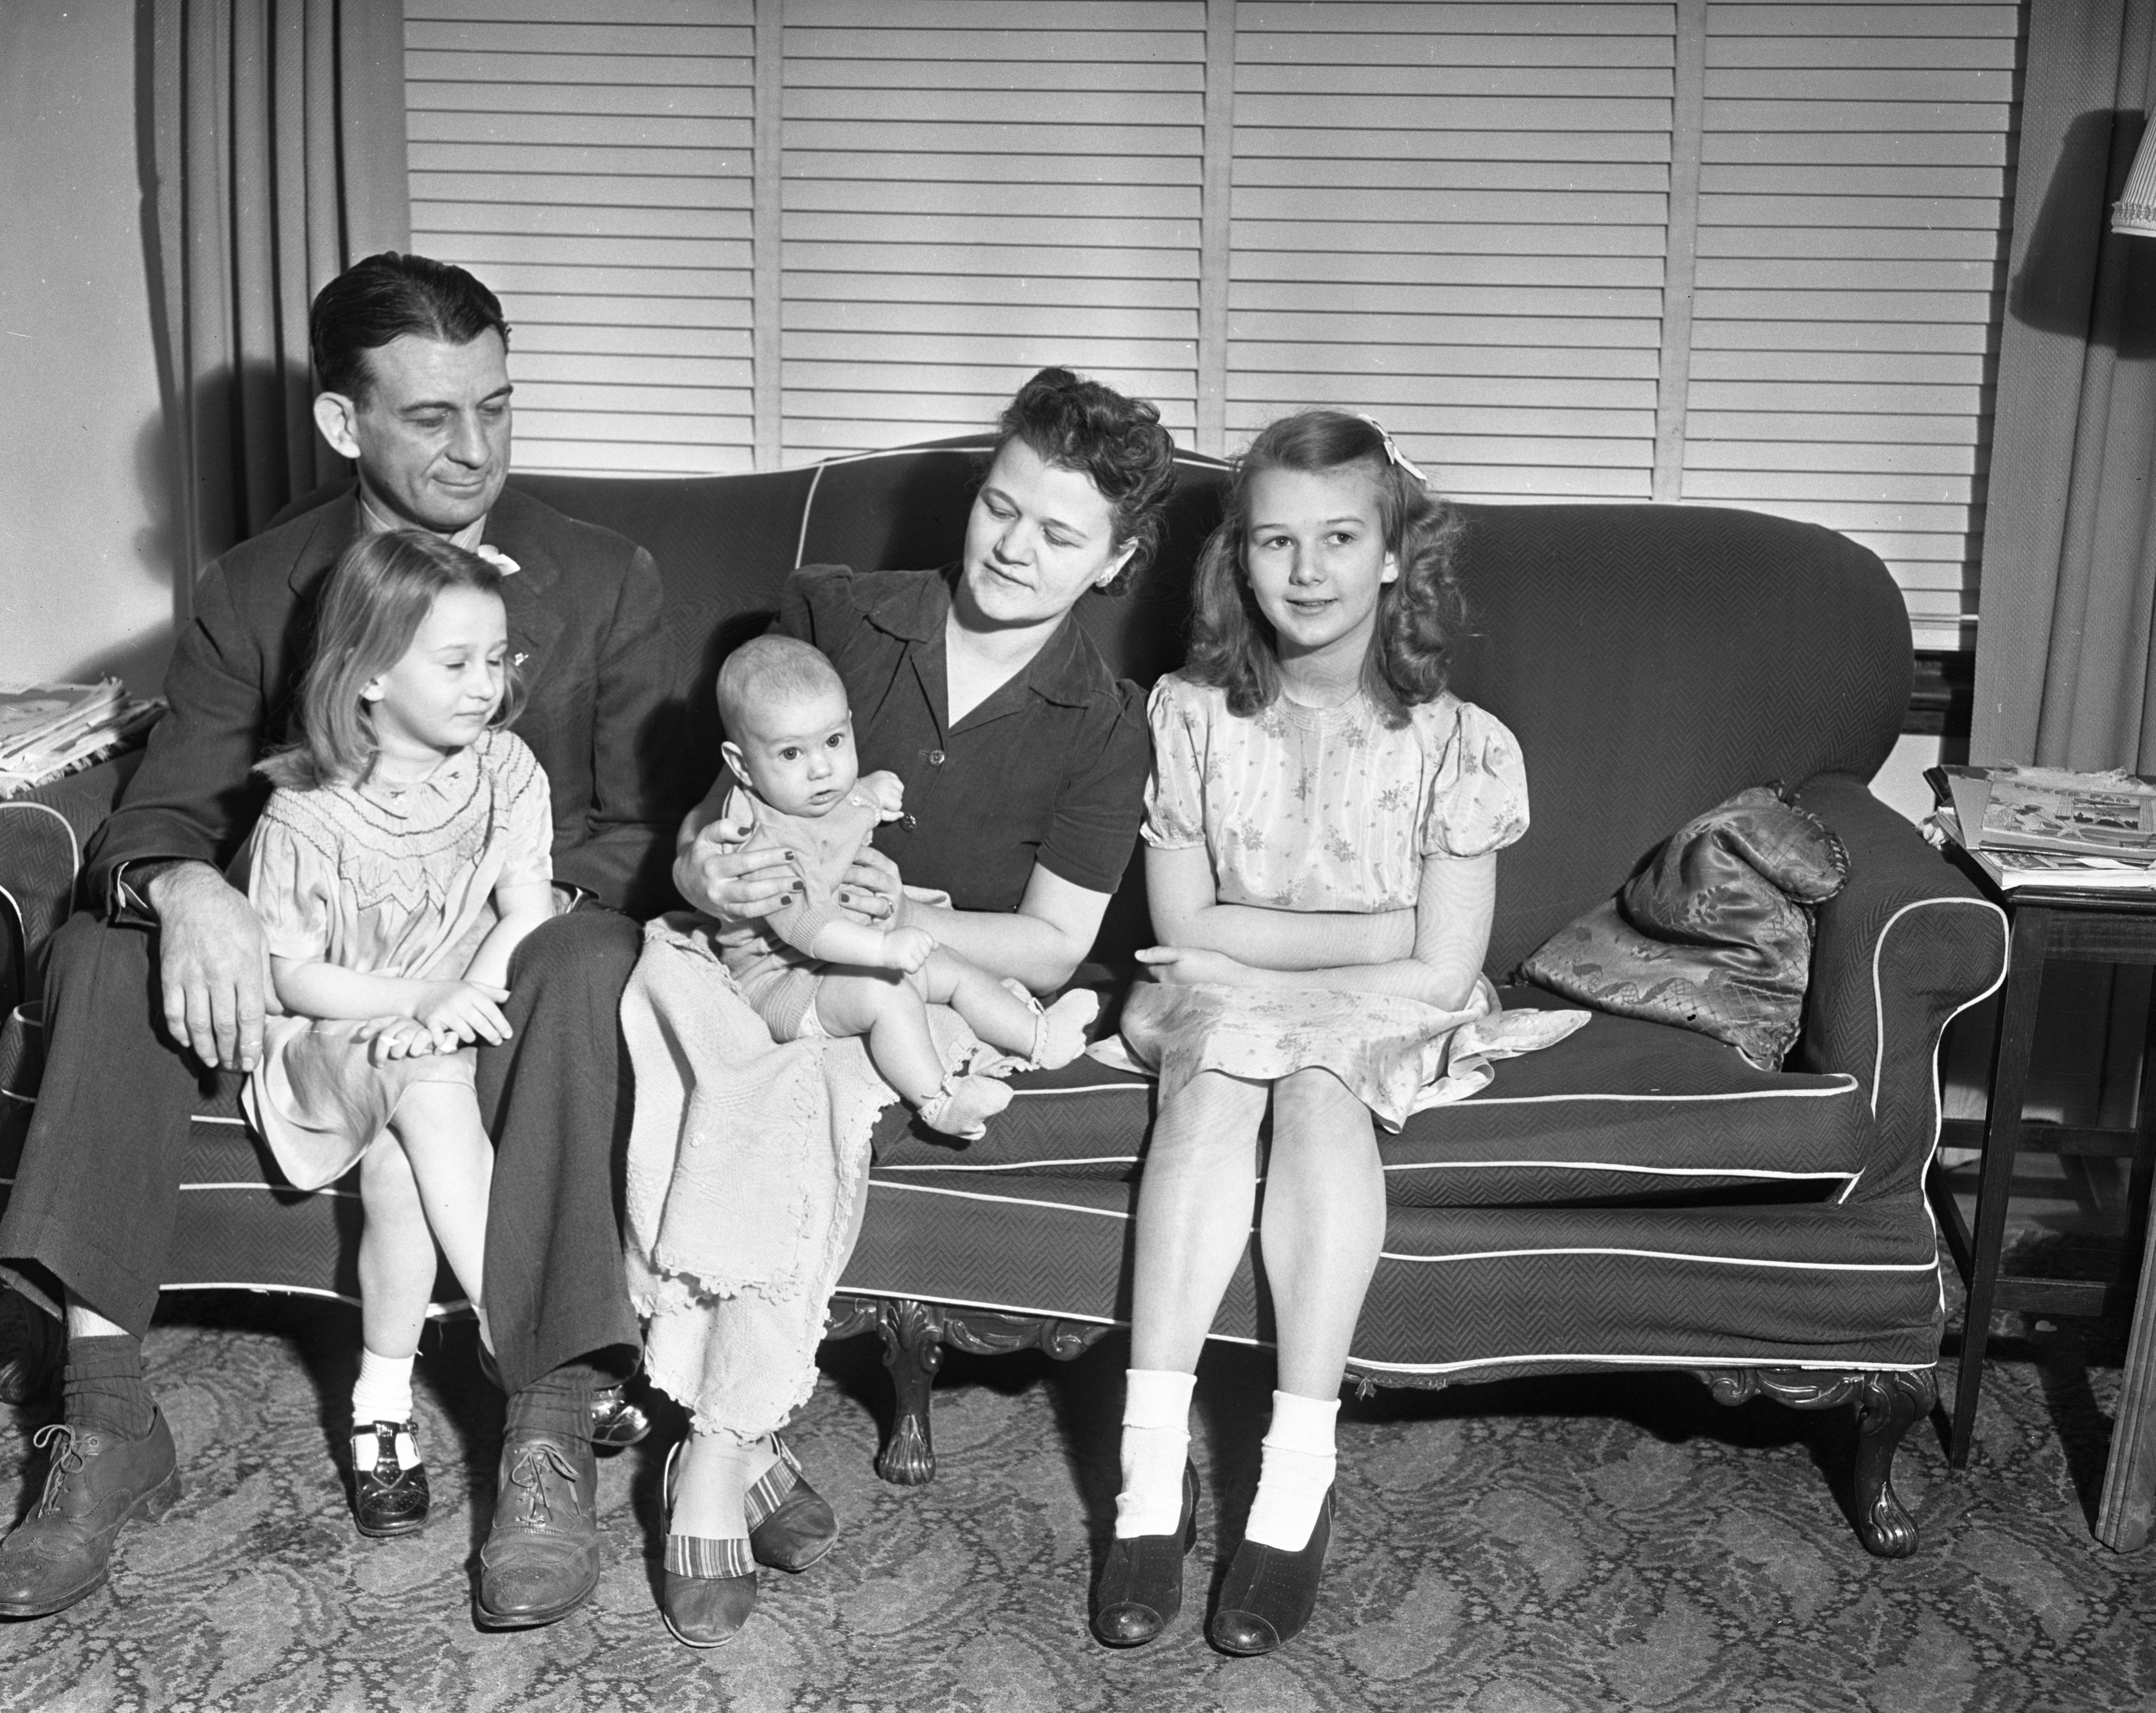 Cliff Keen family with new baby, Jimmy, February 1942 image